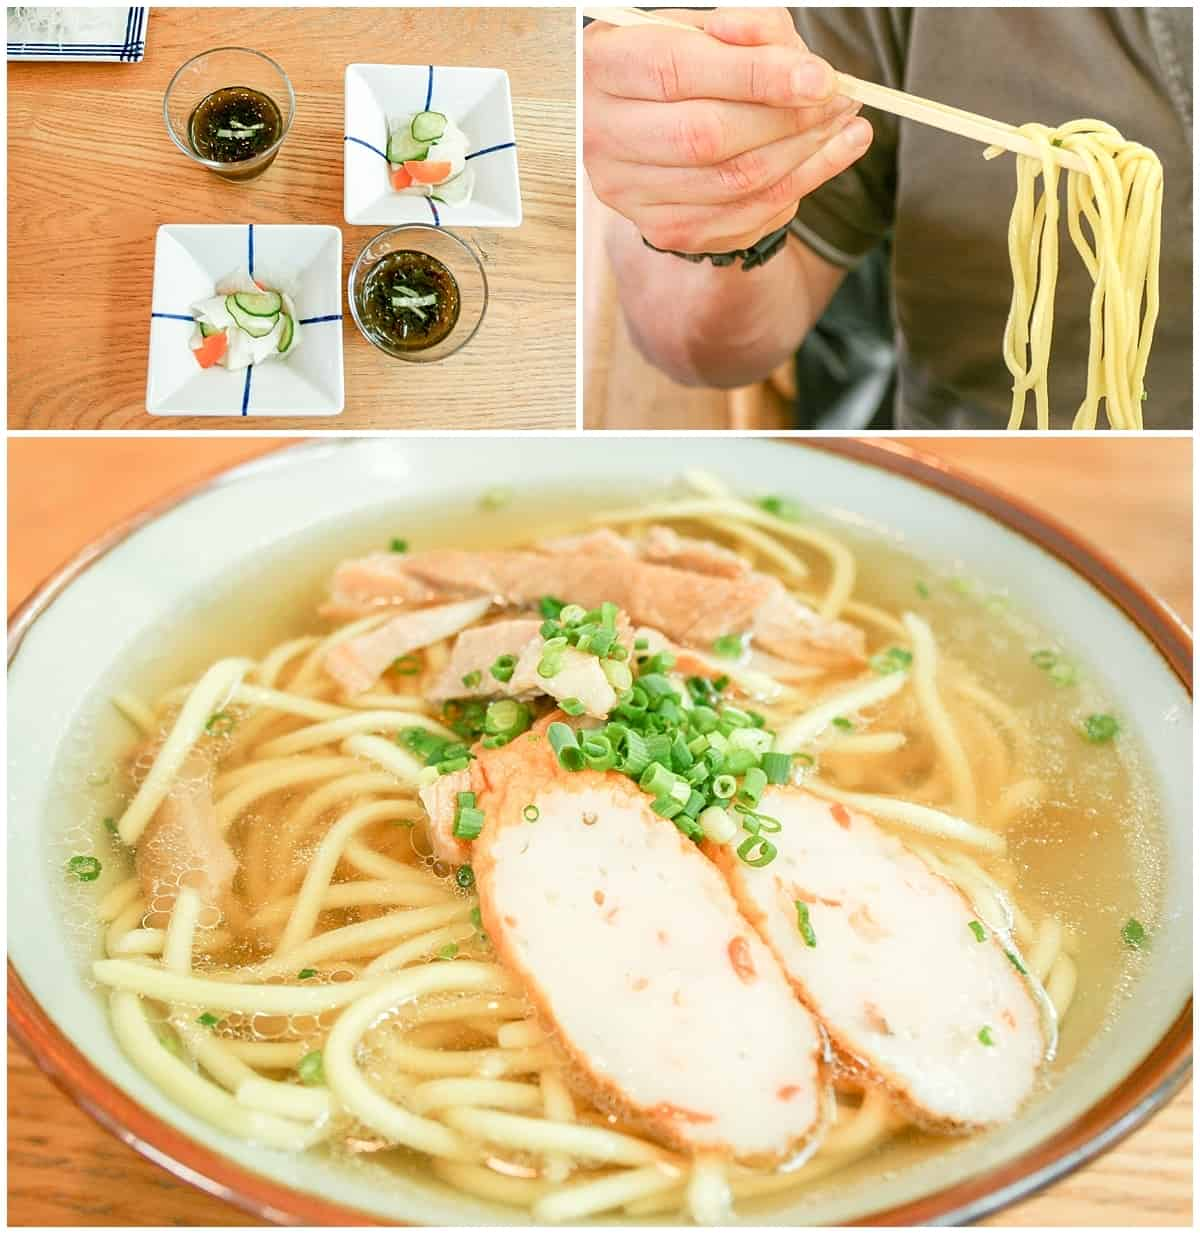 Traditional Okinawa Food - Soba noodles and Goya in Japan